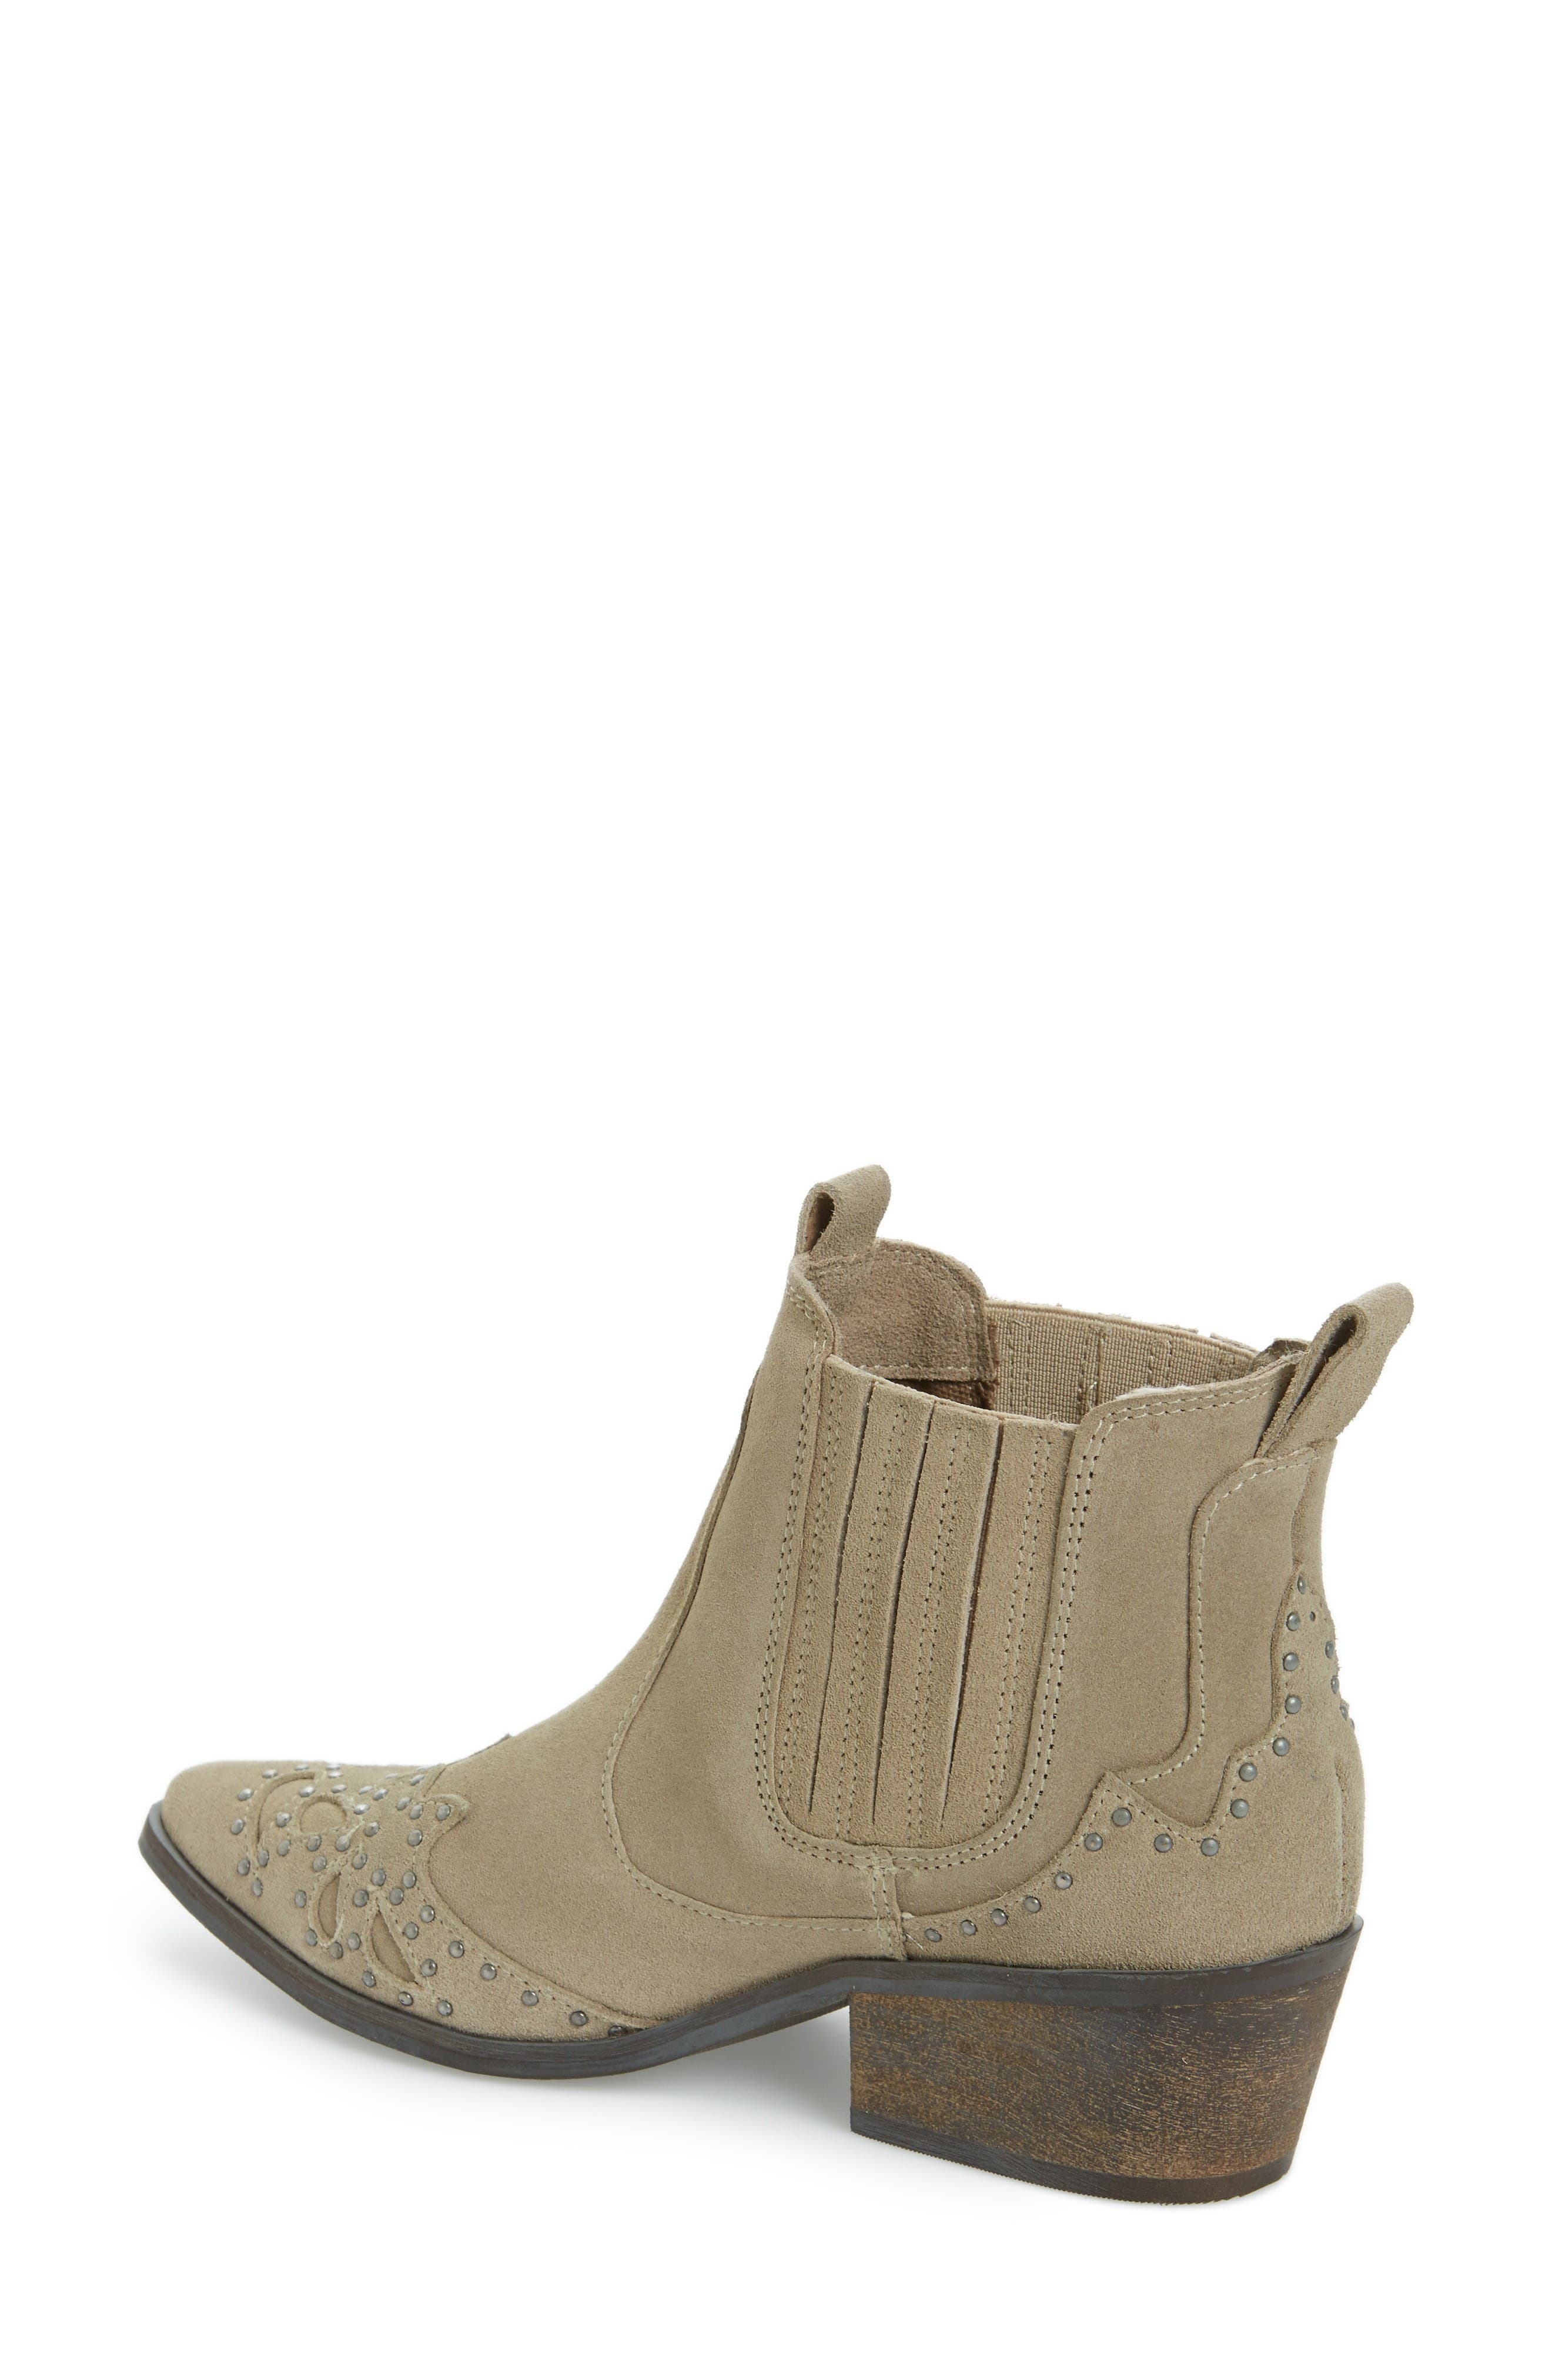 Backstage Bootie,                             Alternate thumbnail 2, color,                             Taupe Leather